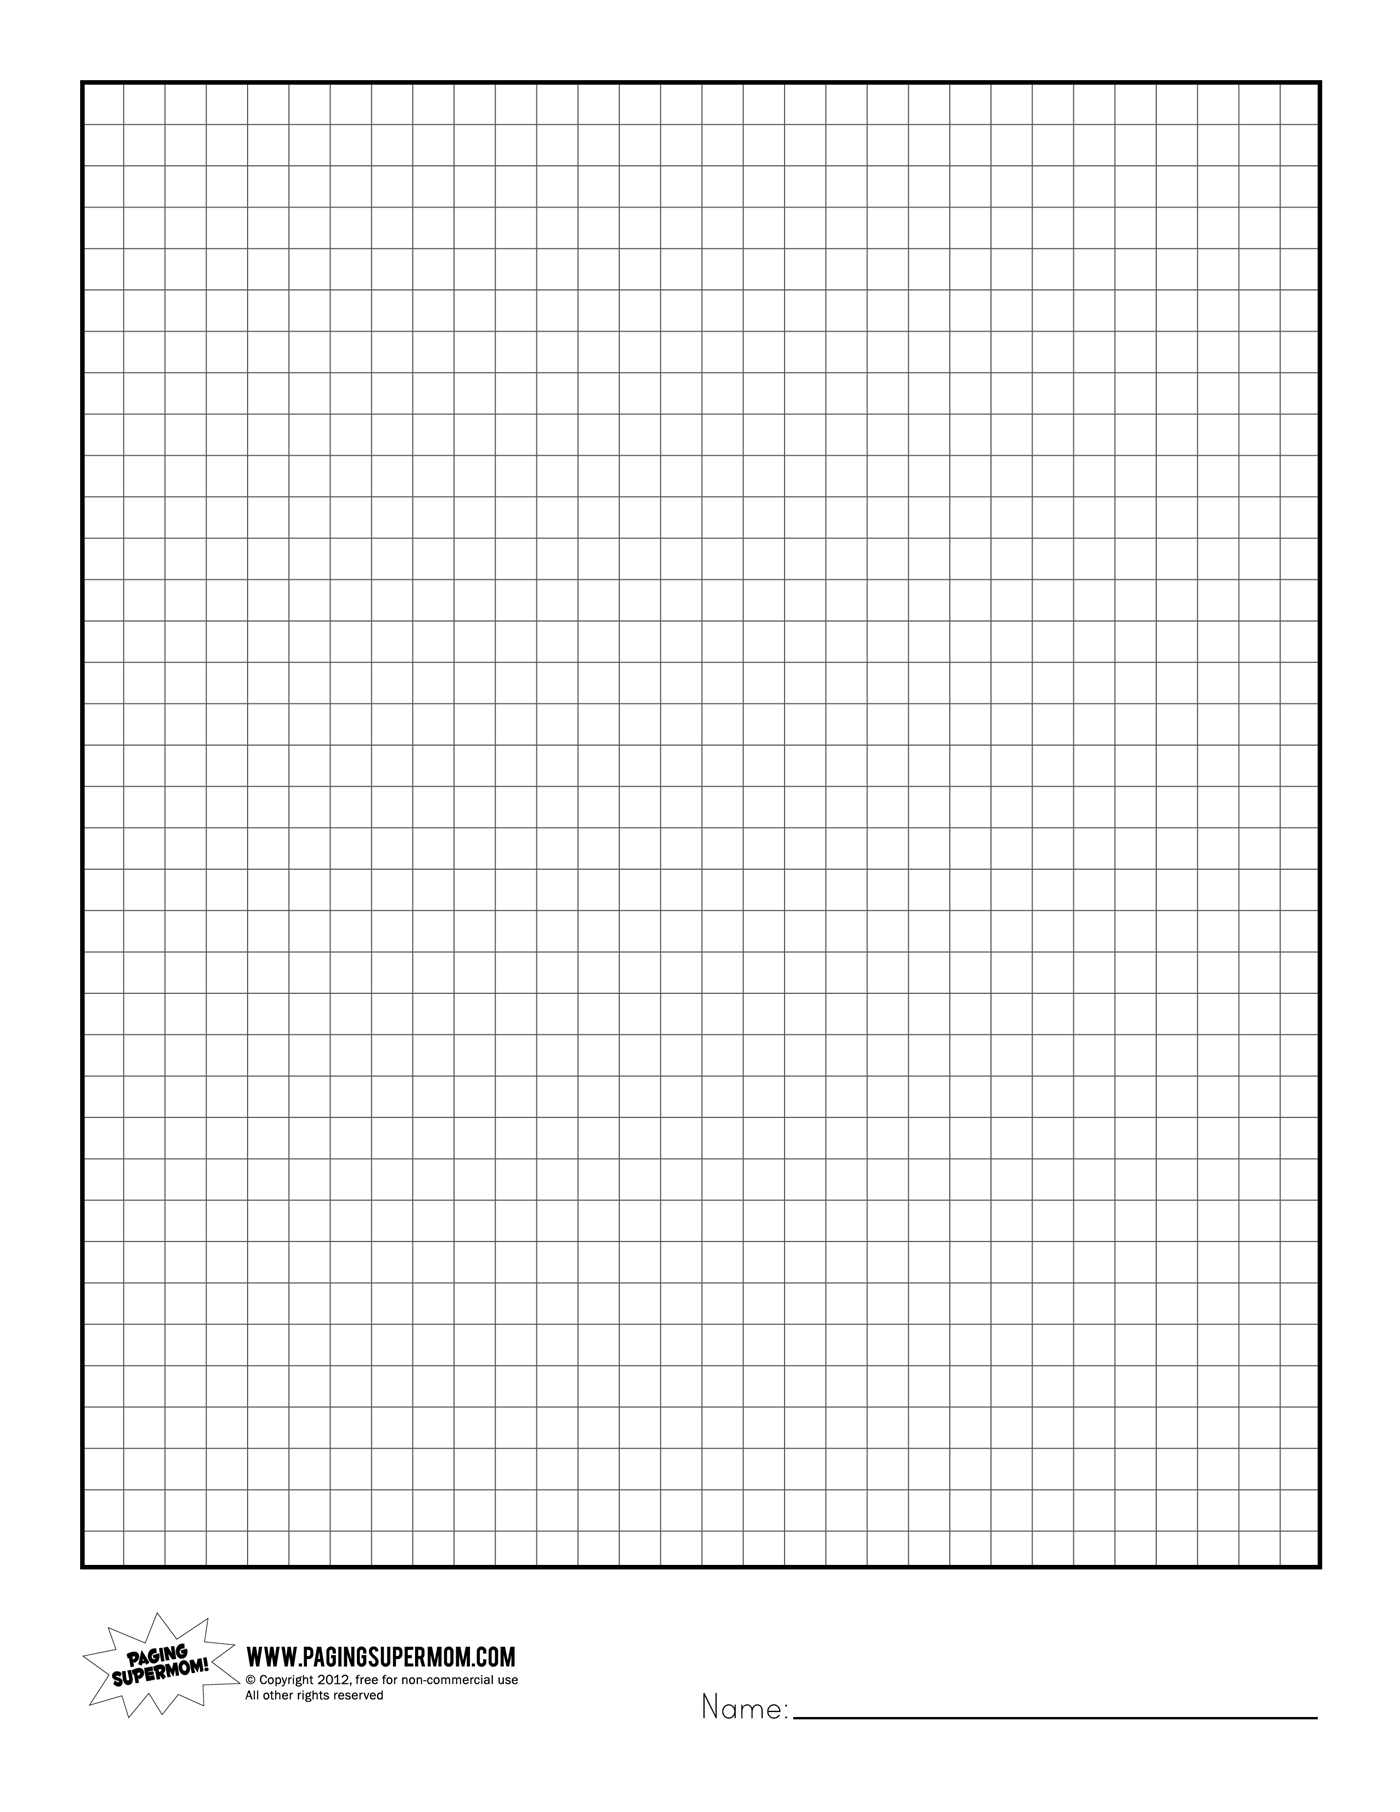 print graphing paper